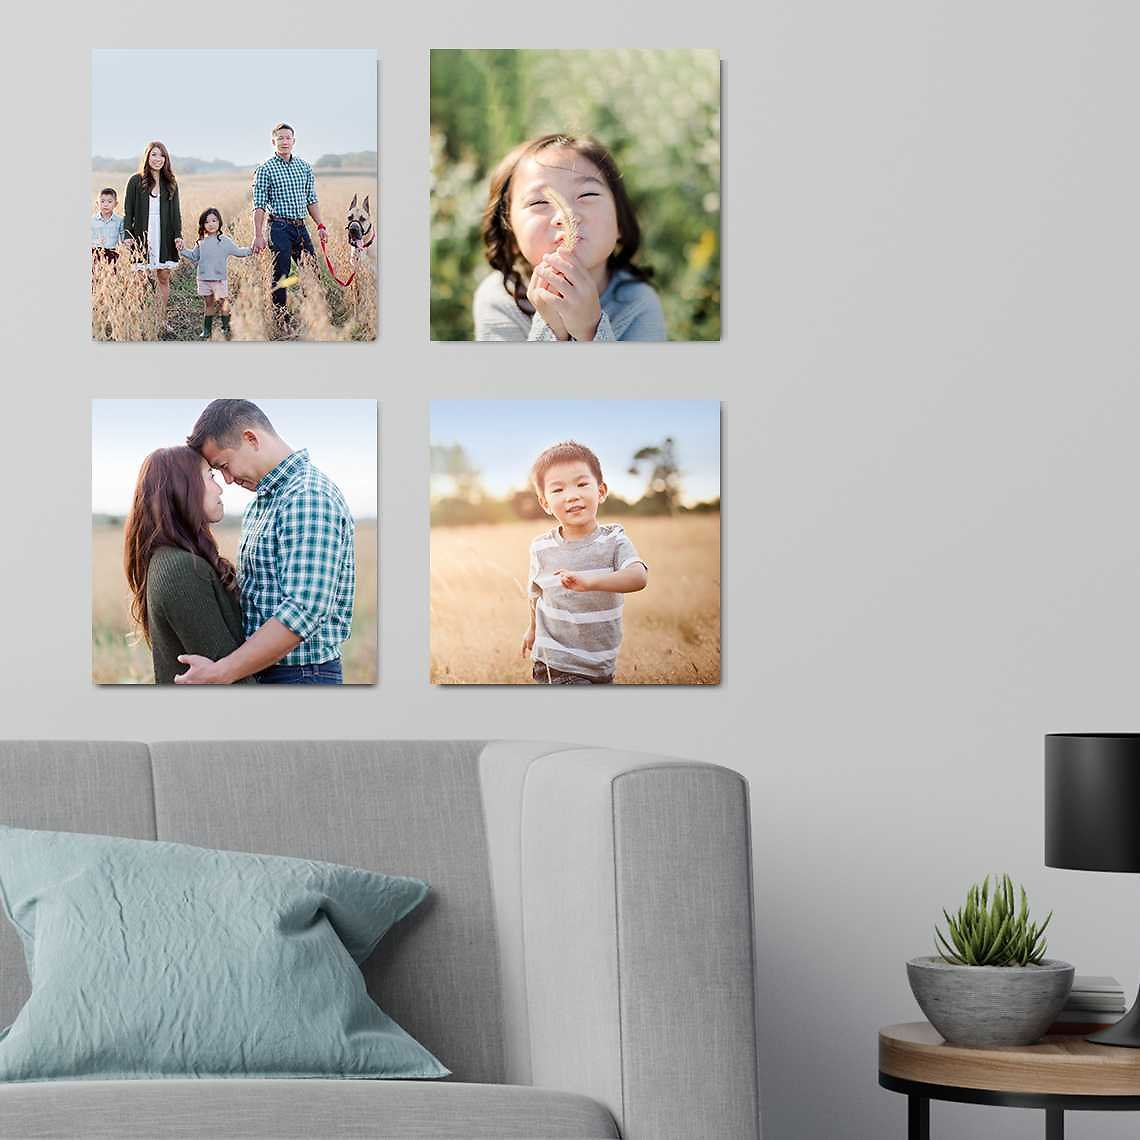 Any Photo Tile for only $1